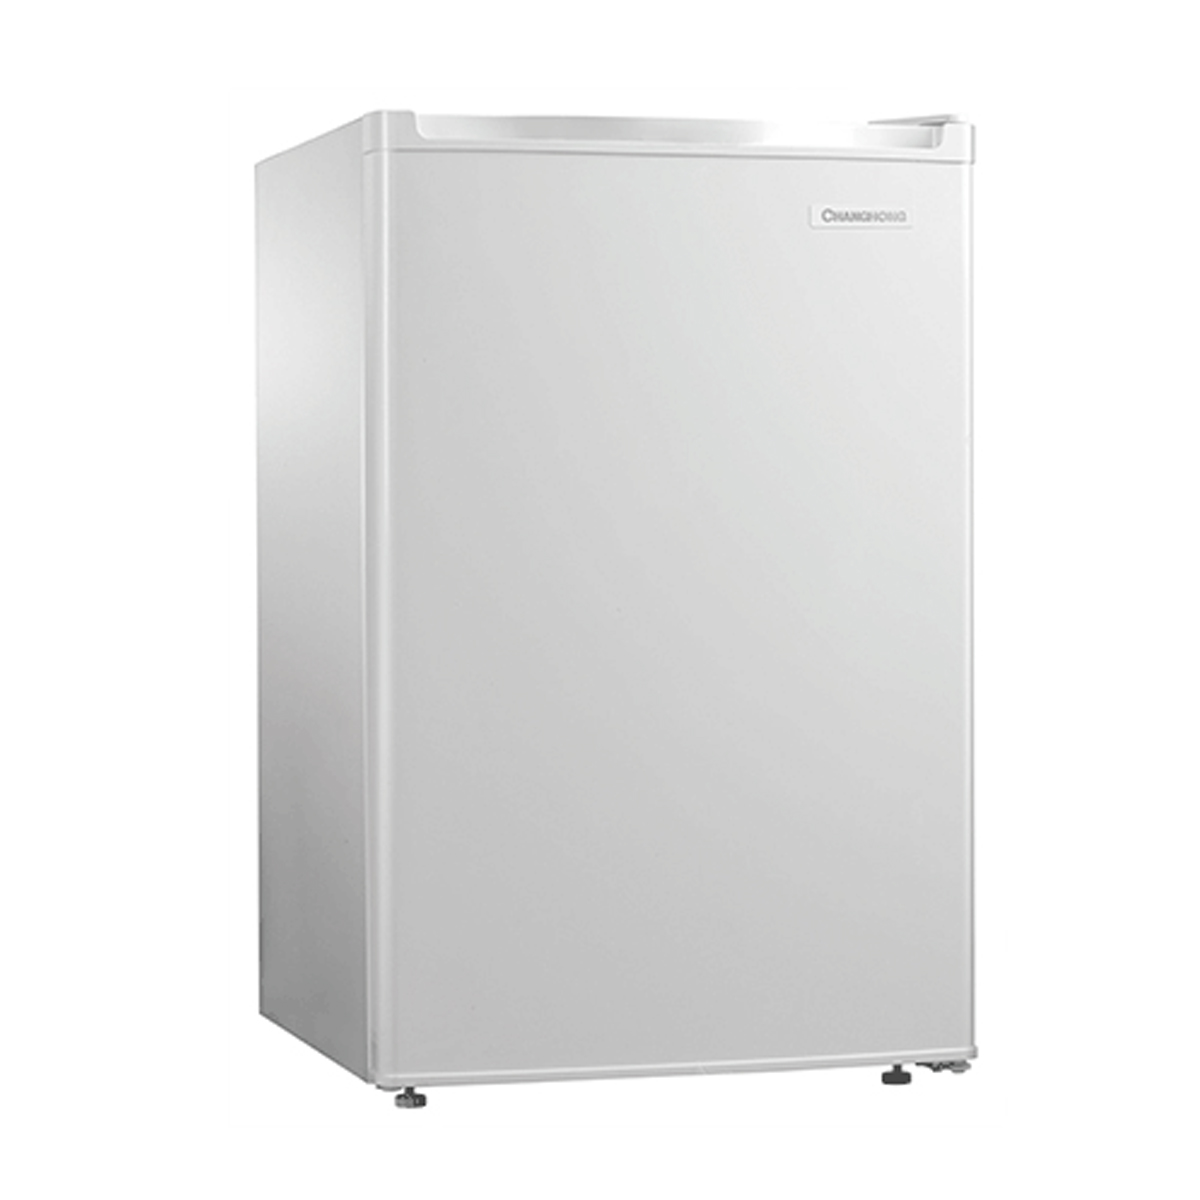 Changchong FSR120R02W 117 Litre Bar Fridge 132985